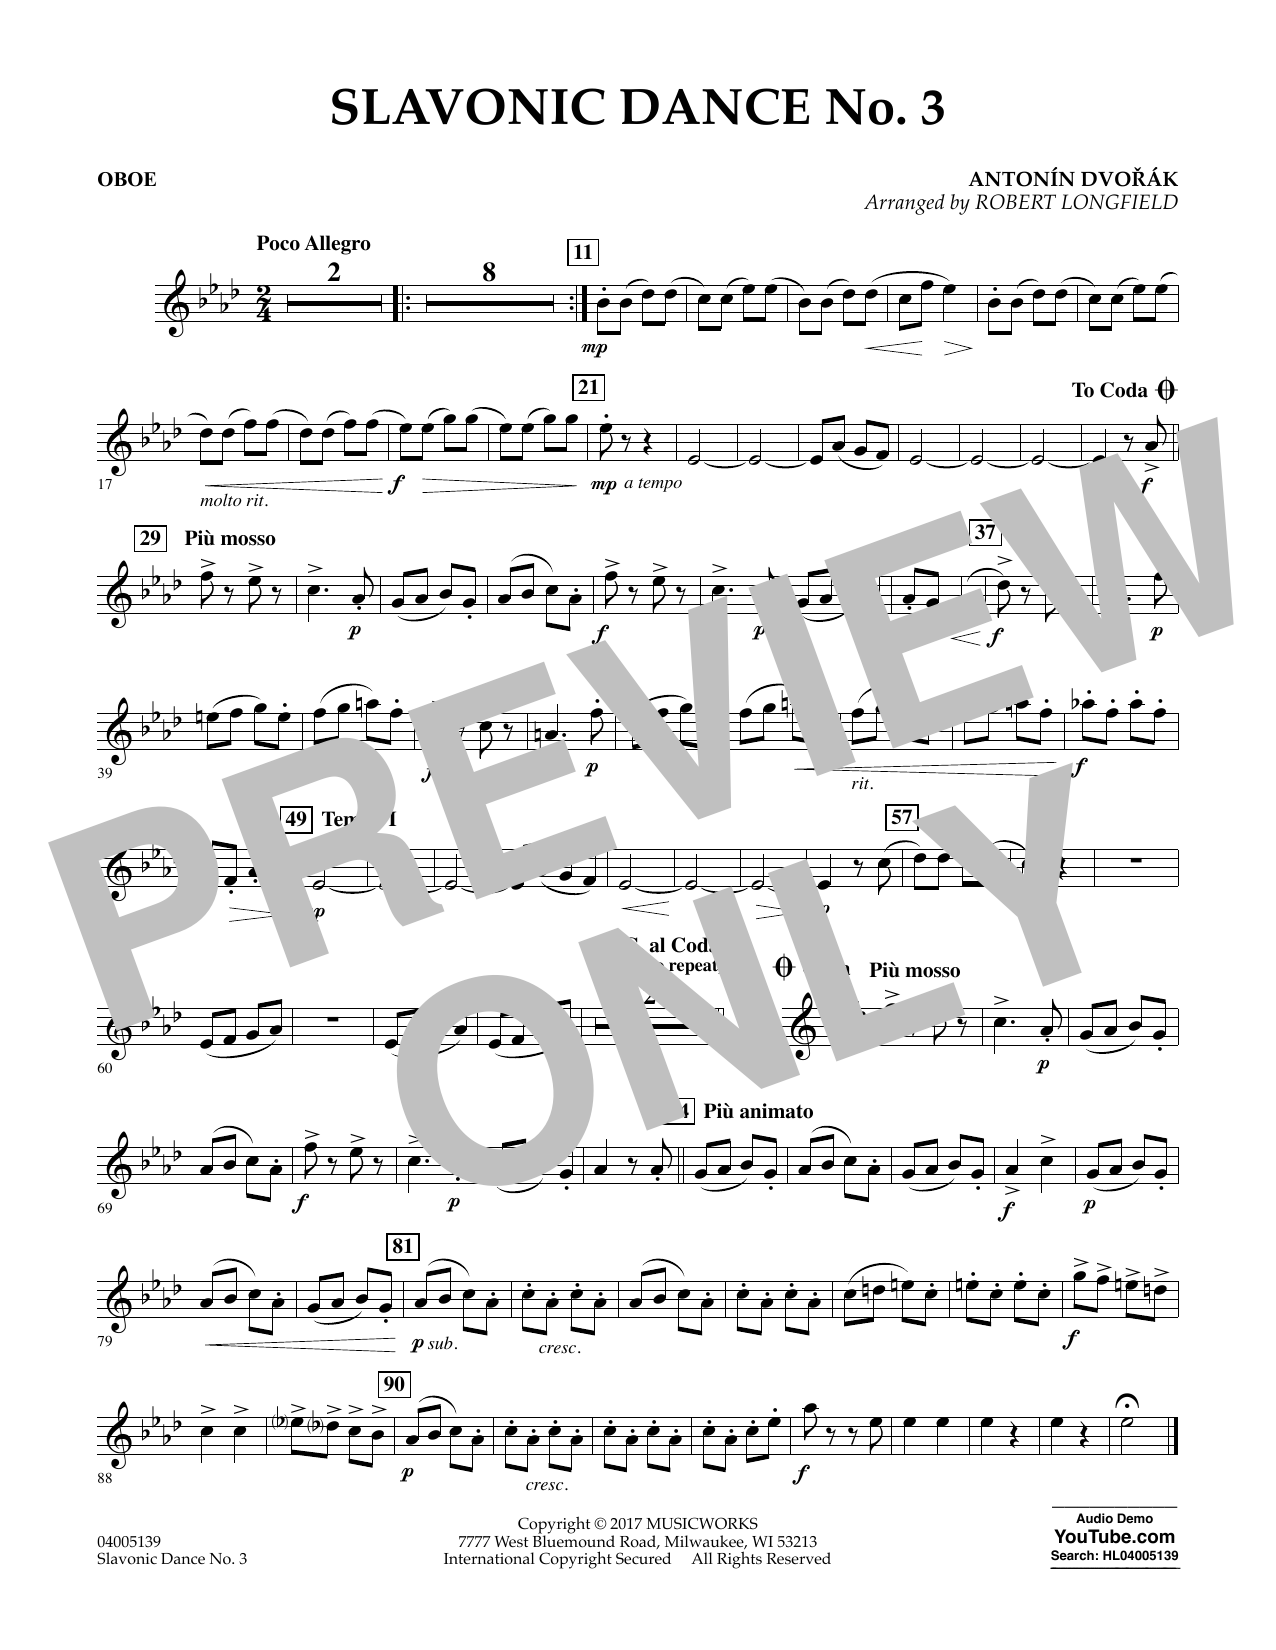 Robert Longfield Slavonic Dance No. 3 - Oboe sheet music notes and chords. Download Printable PDF.